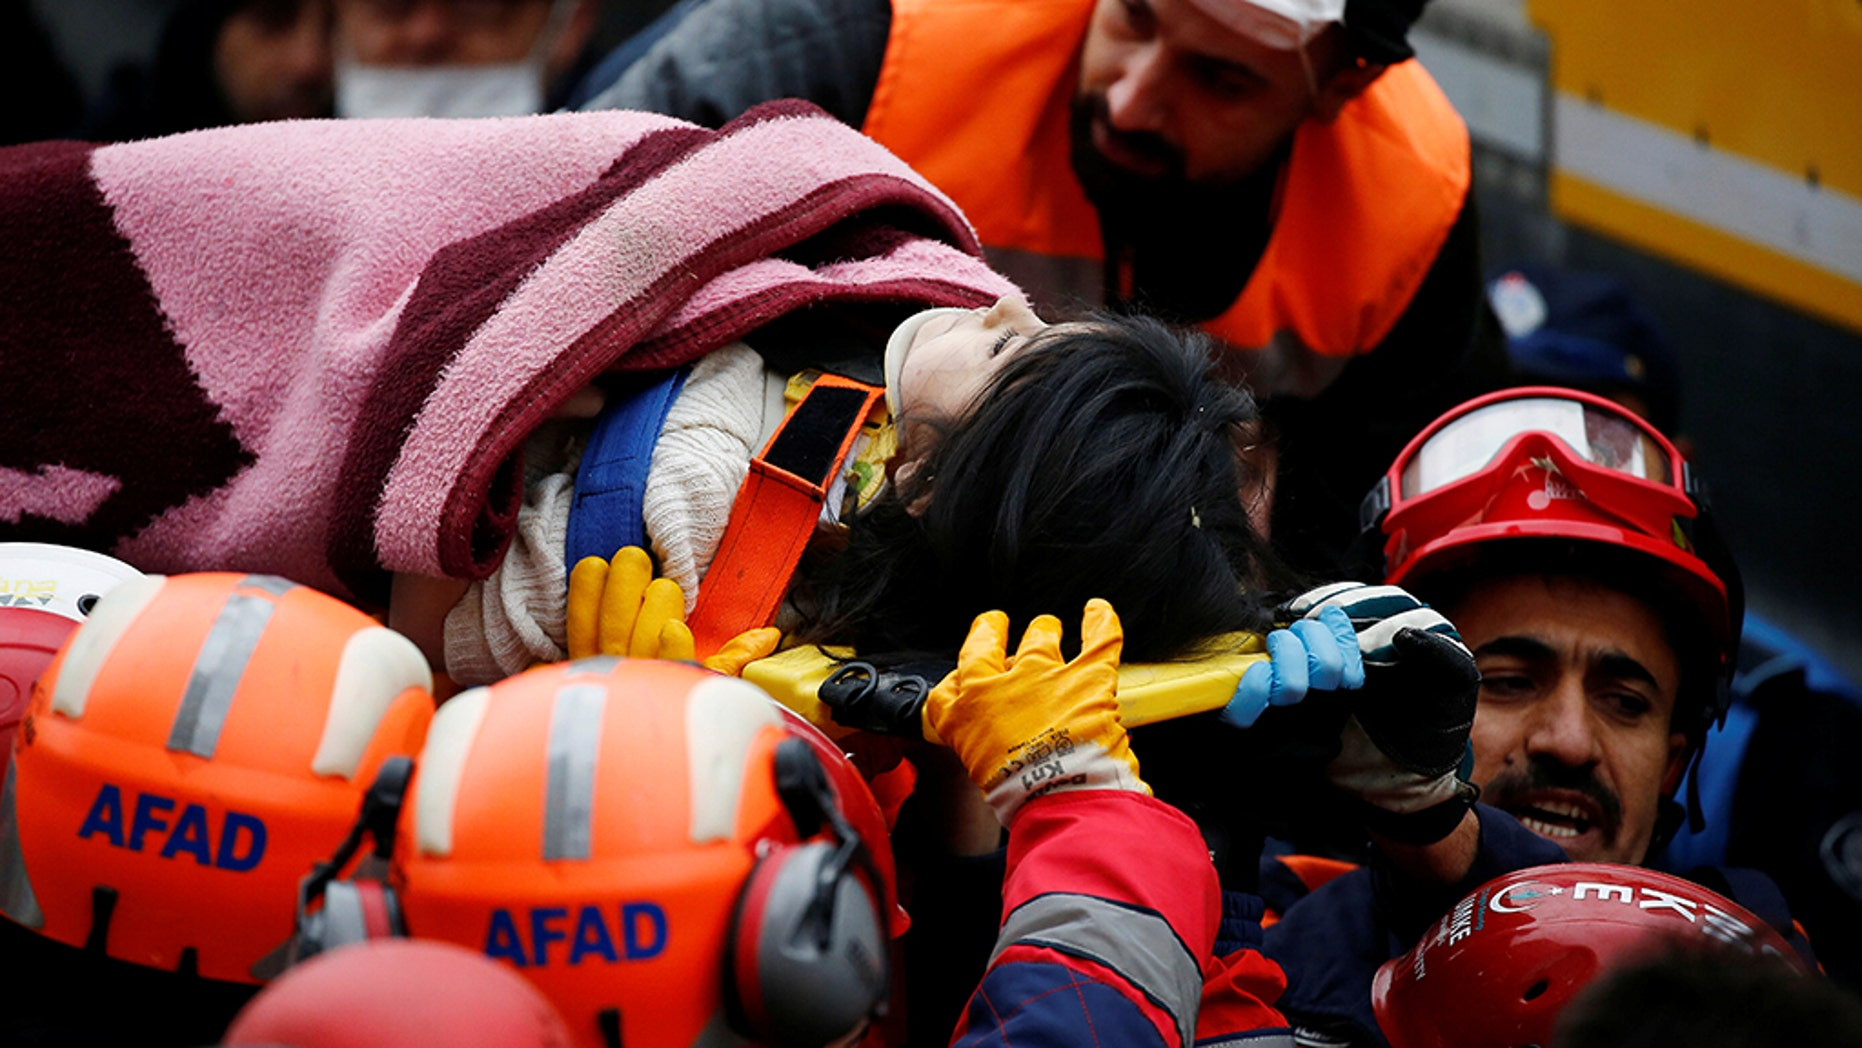 Death toll at Istanbul building collapse reaches 21